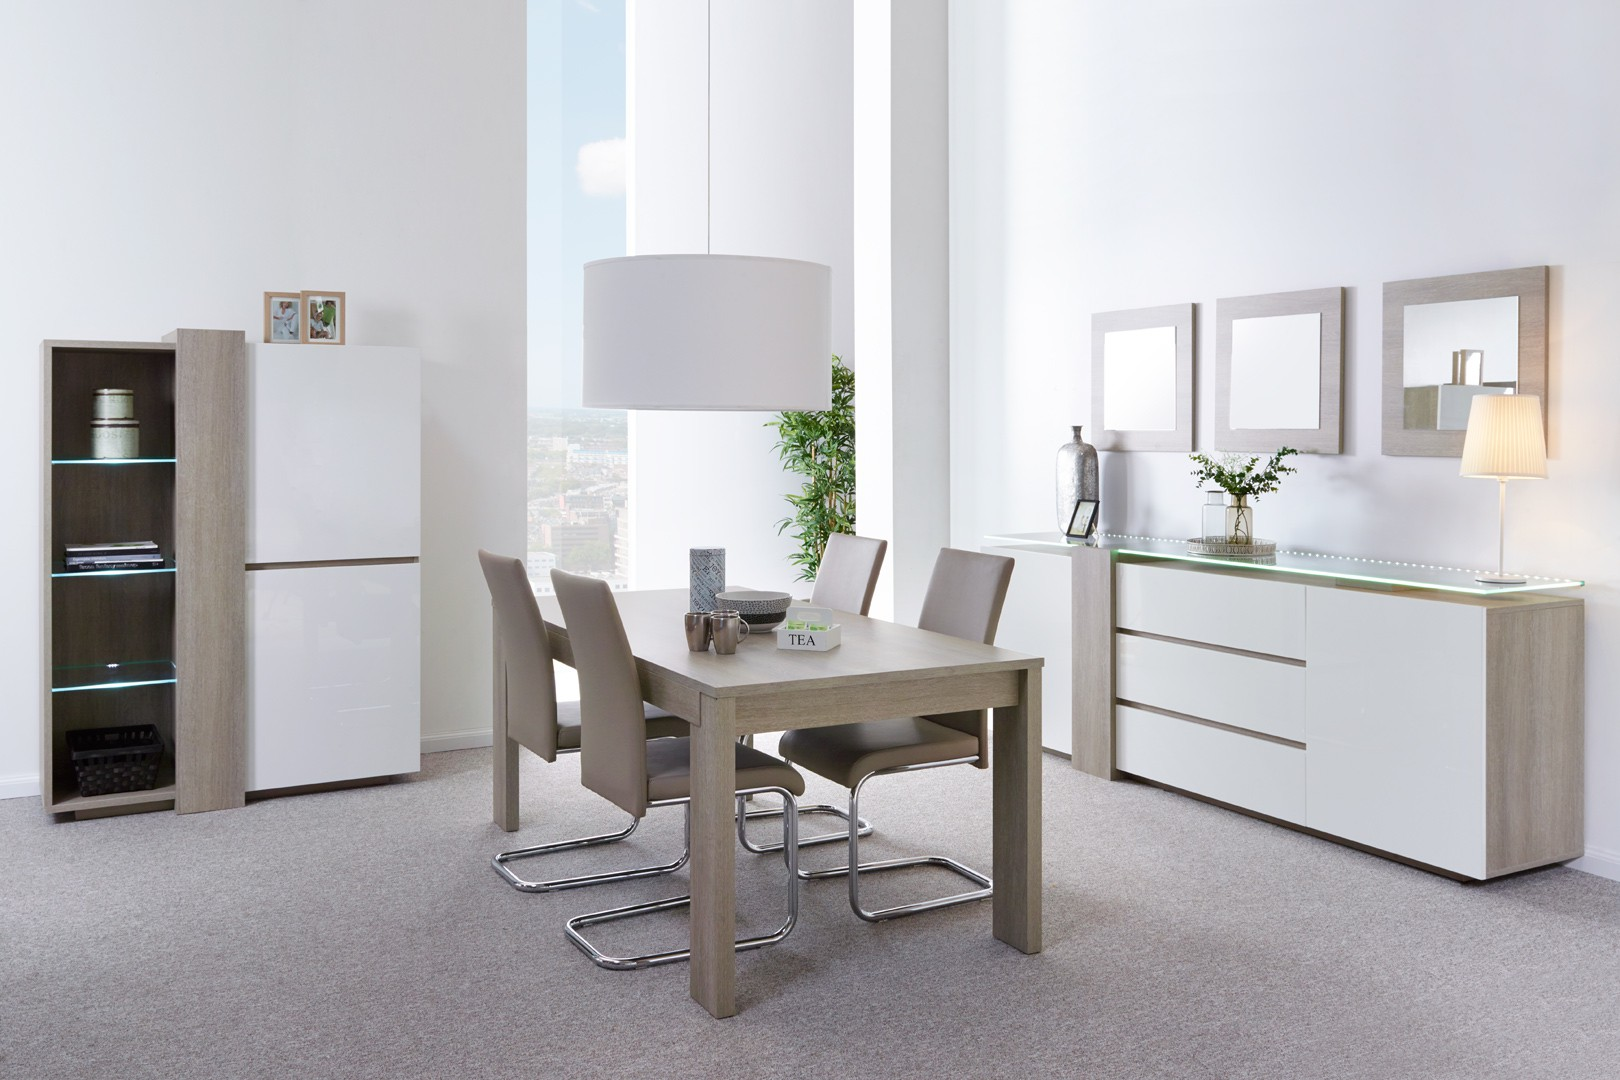 Chaises Salle A Manger Blanches Idees De Decoration Interieure